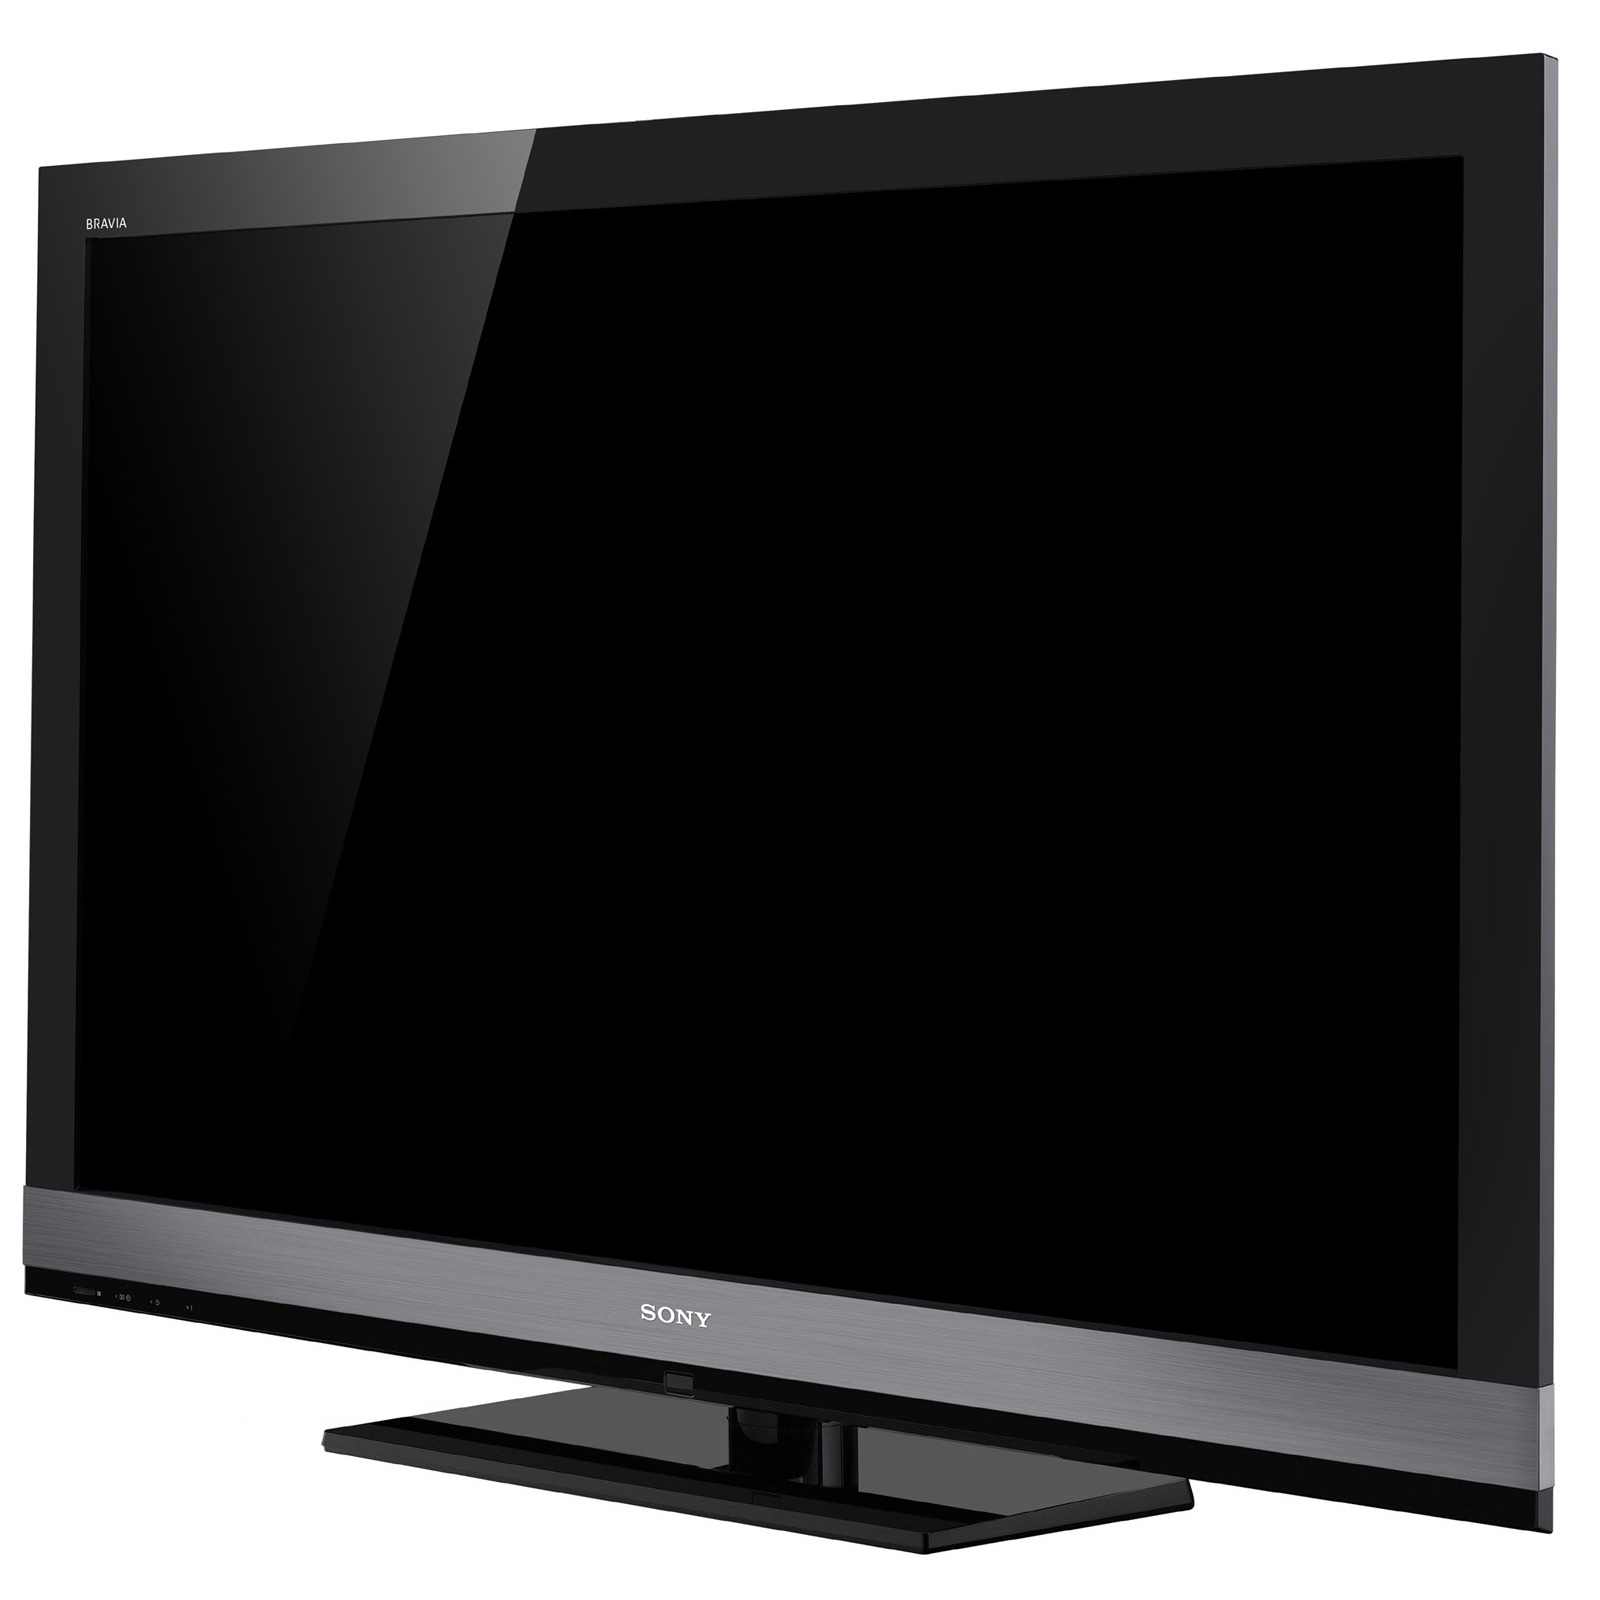 sony bravia kdl 32ex700 tv sony sur. Black Bedroom Furniture Sets. Home Design Ideas